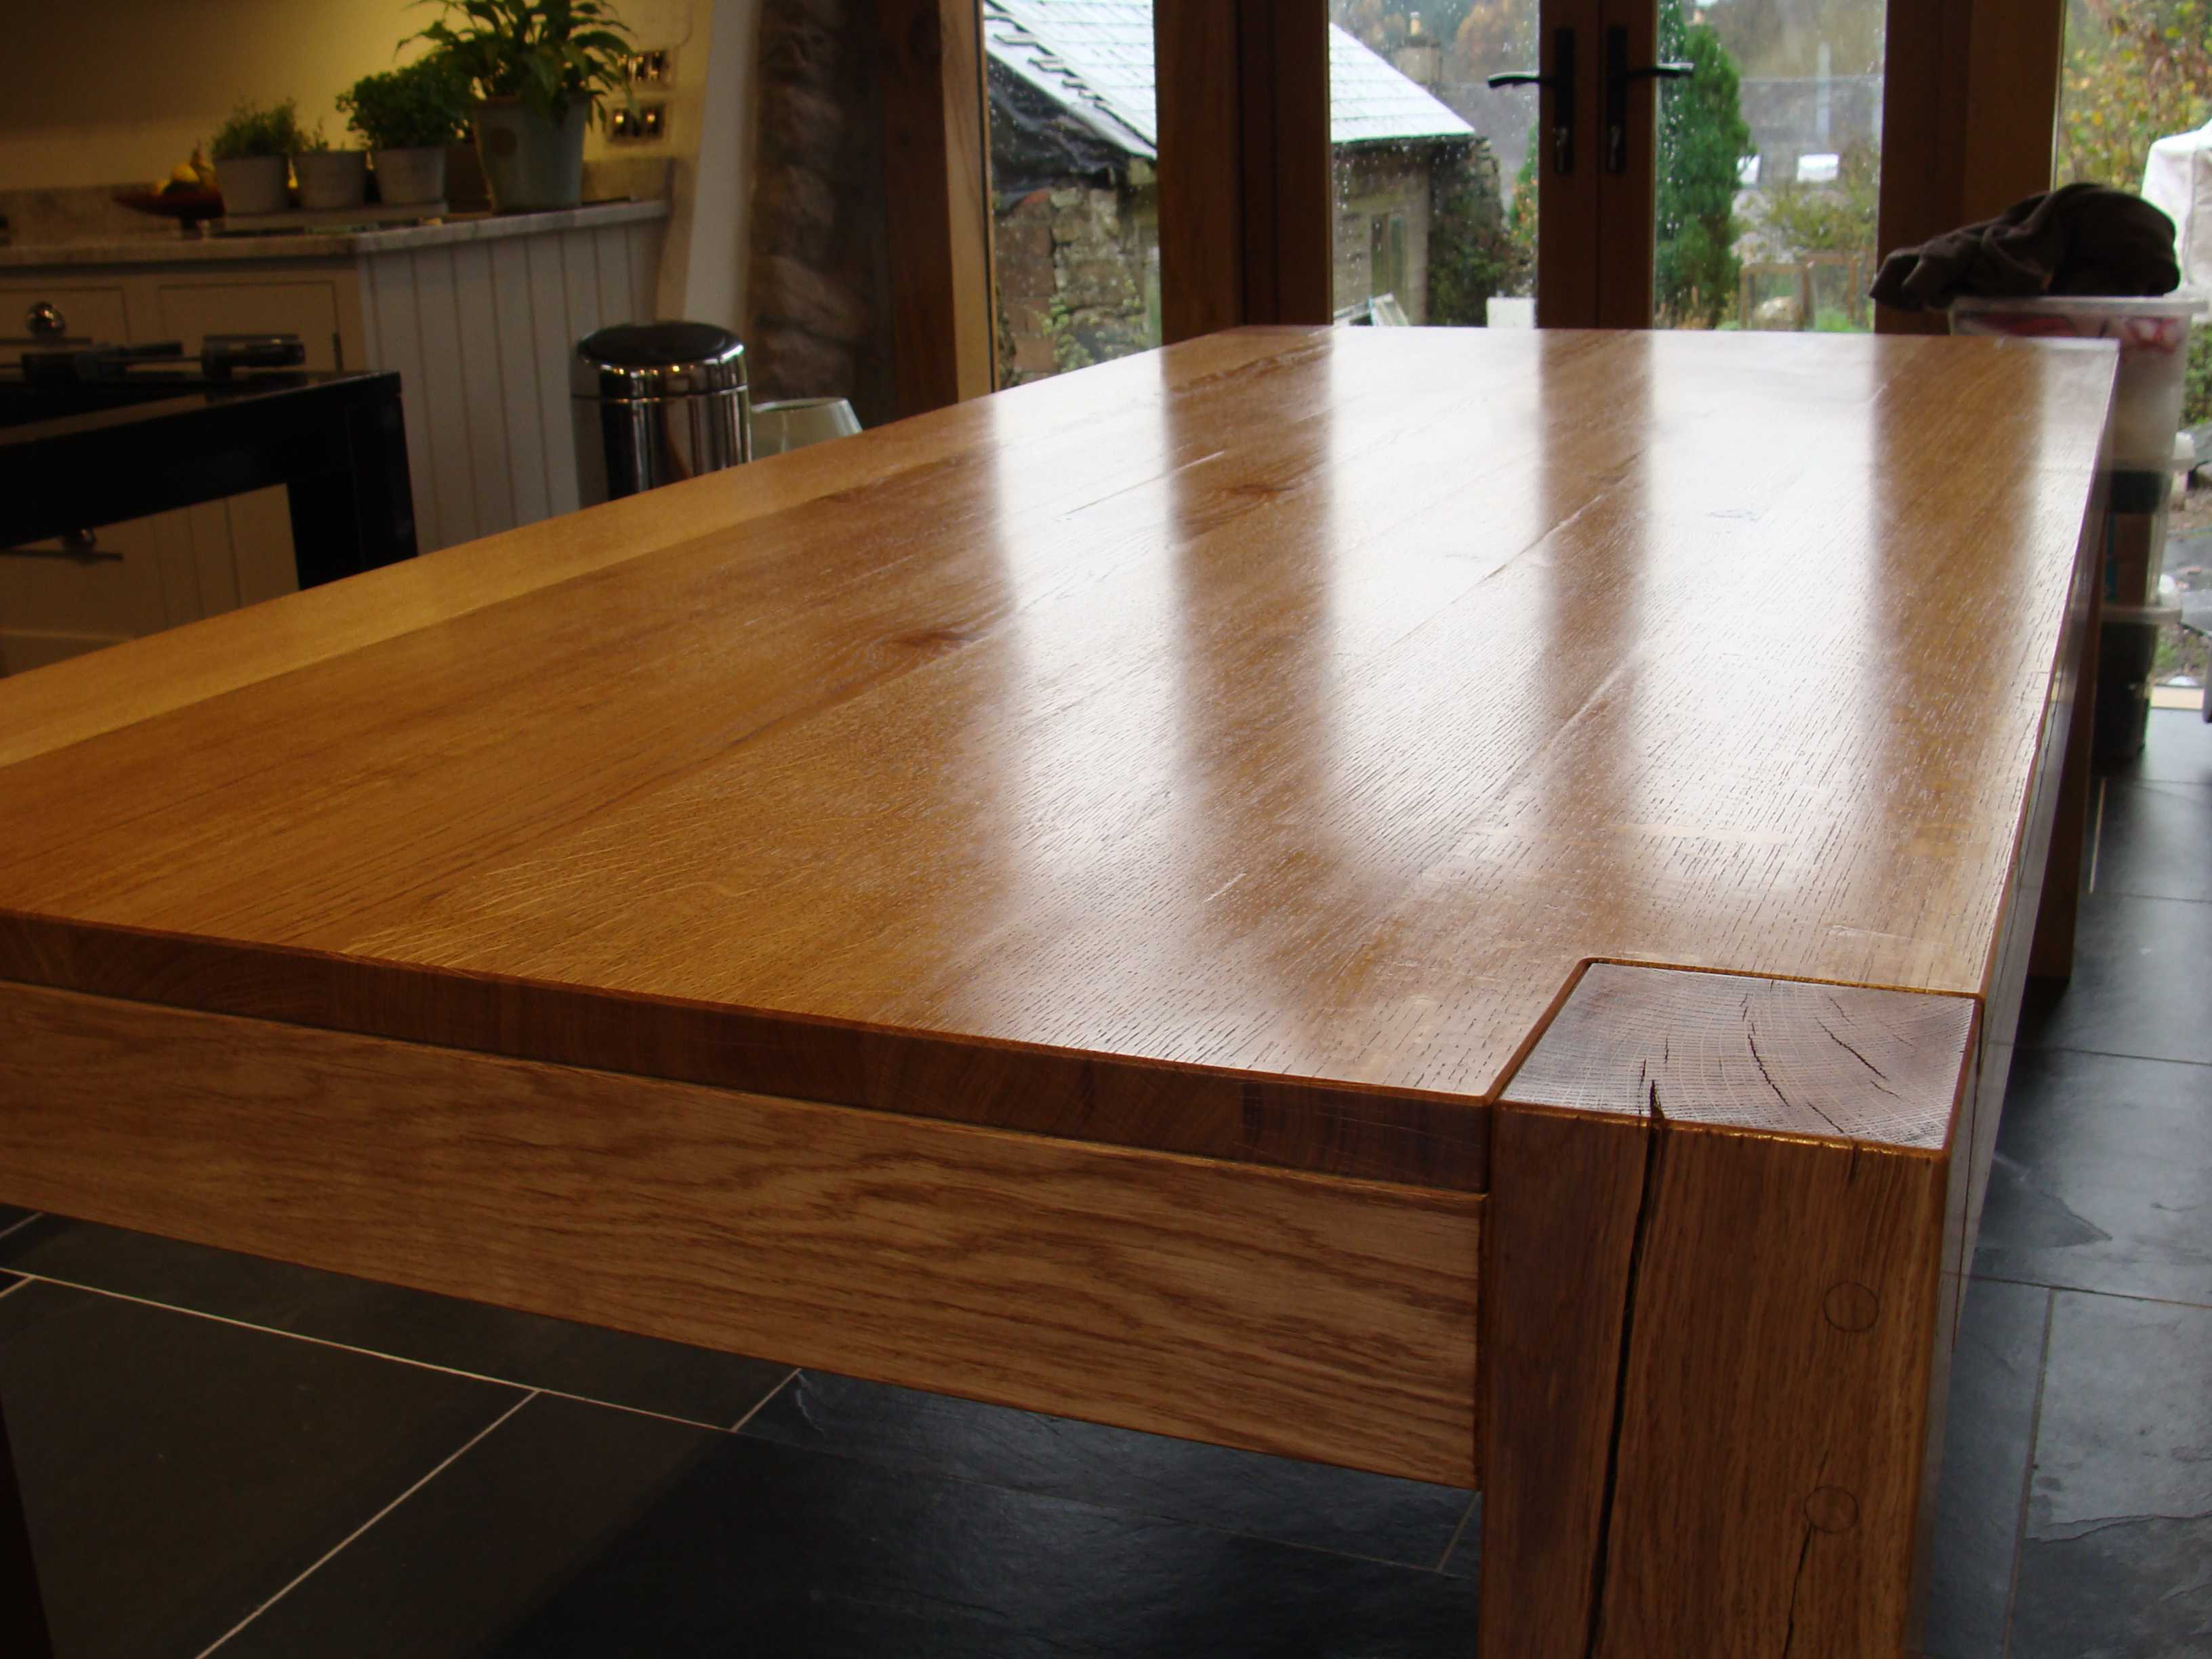 Bespoke Handmade Furniture For Bristol And Beyond